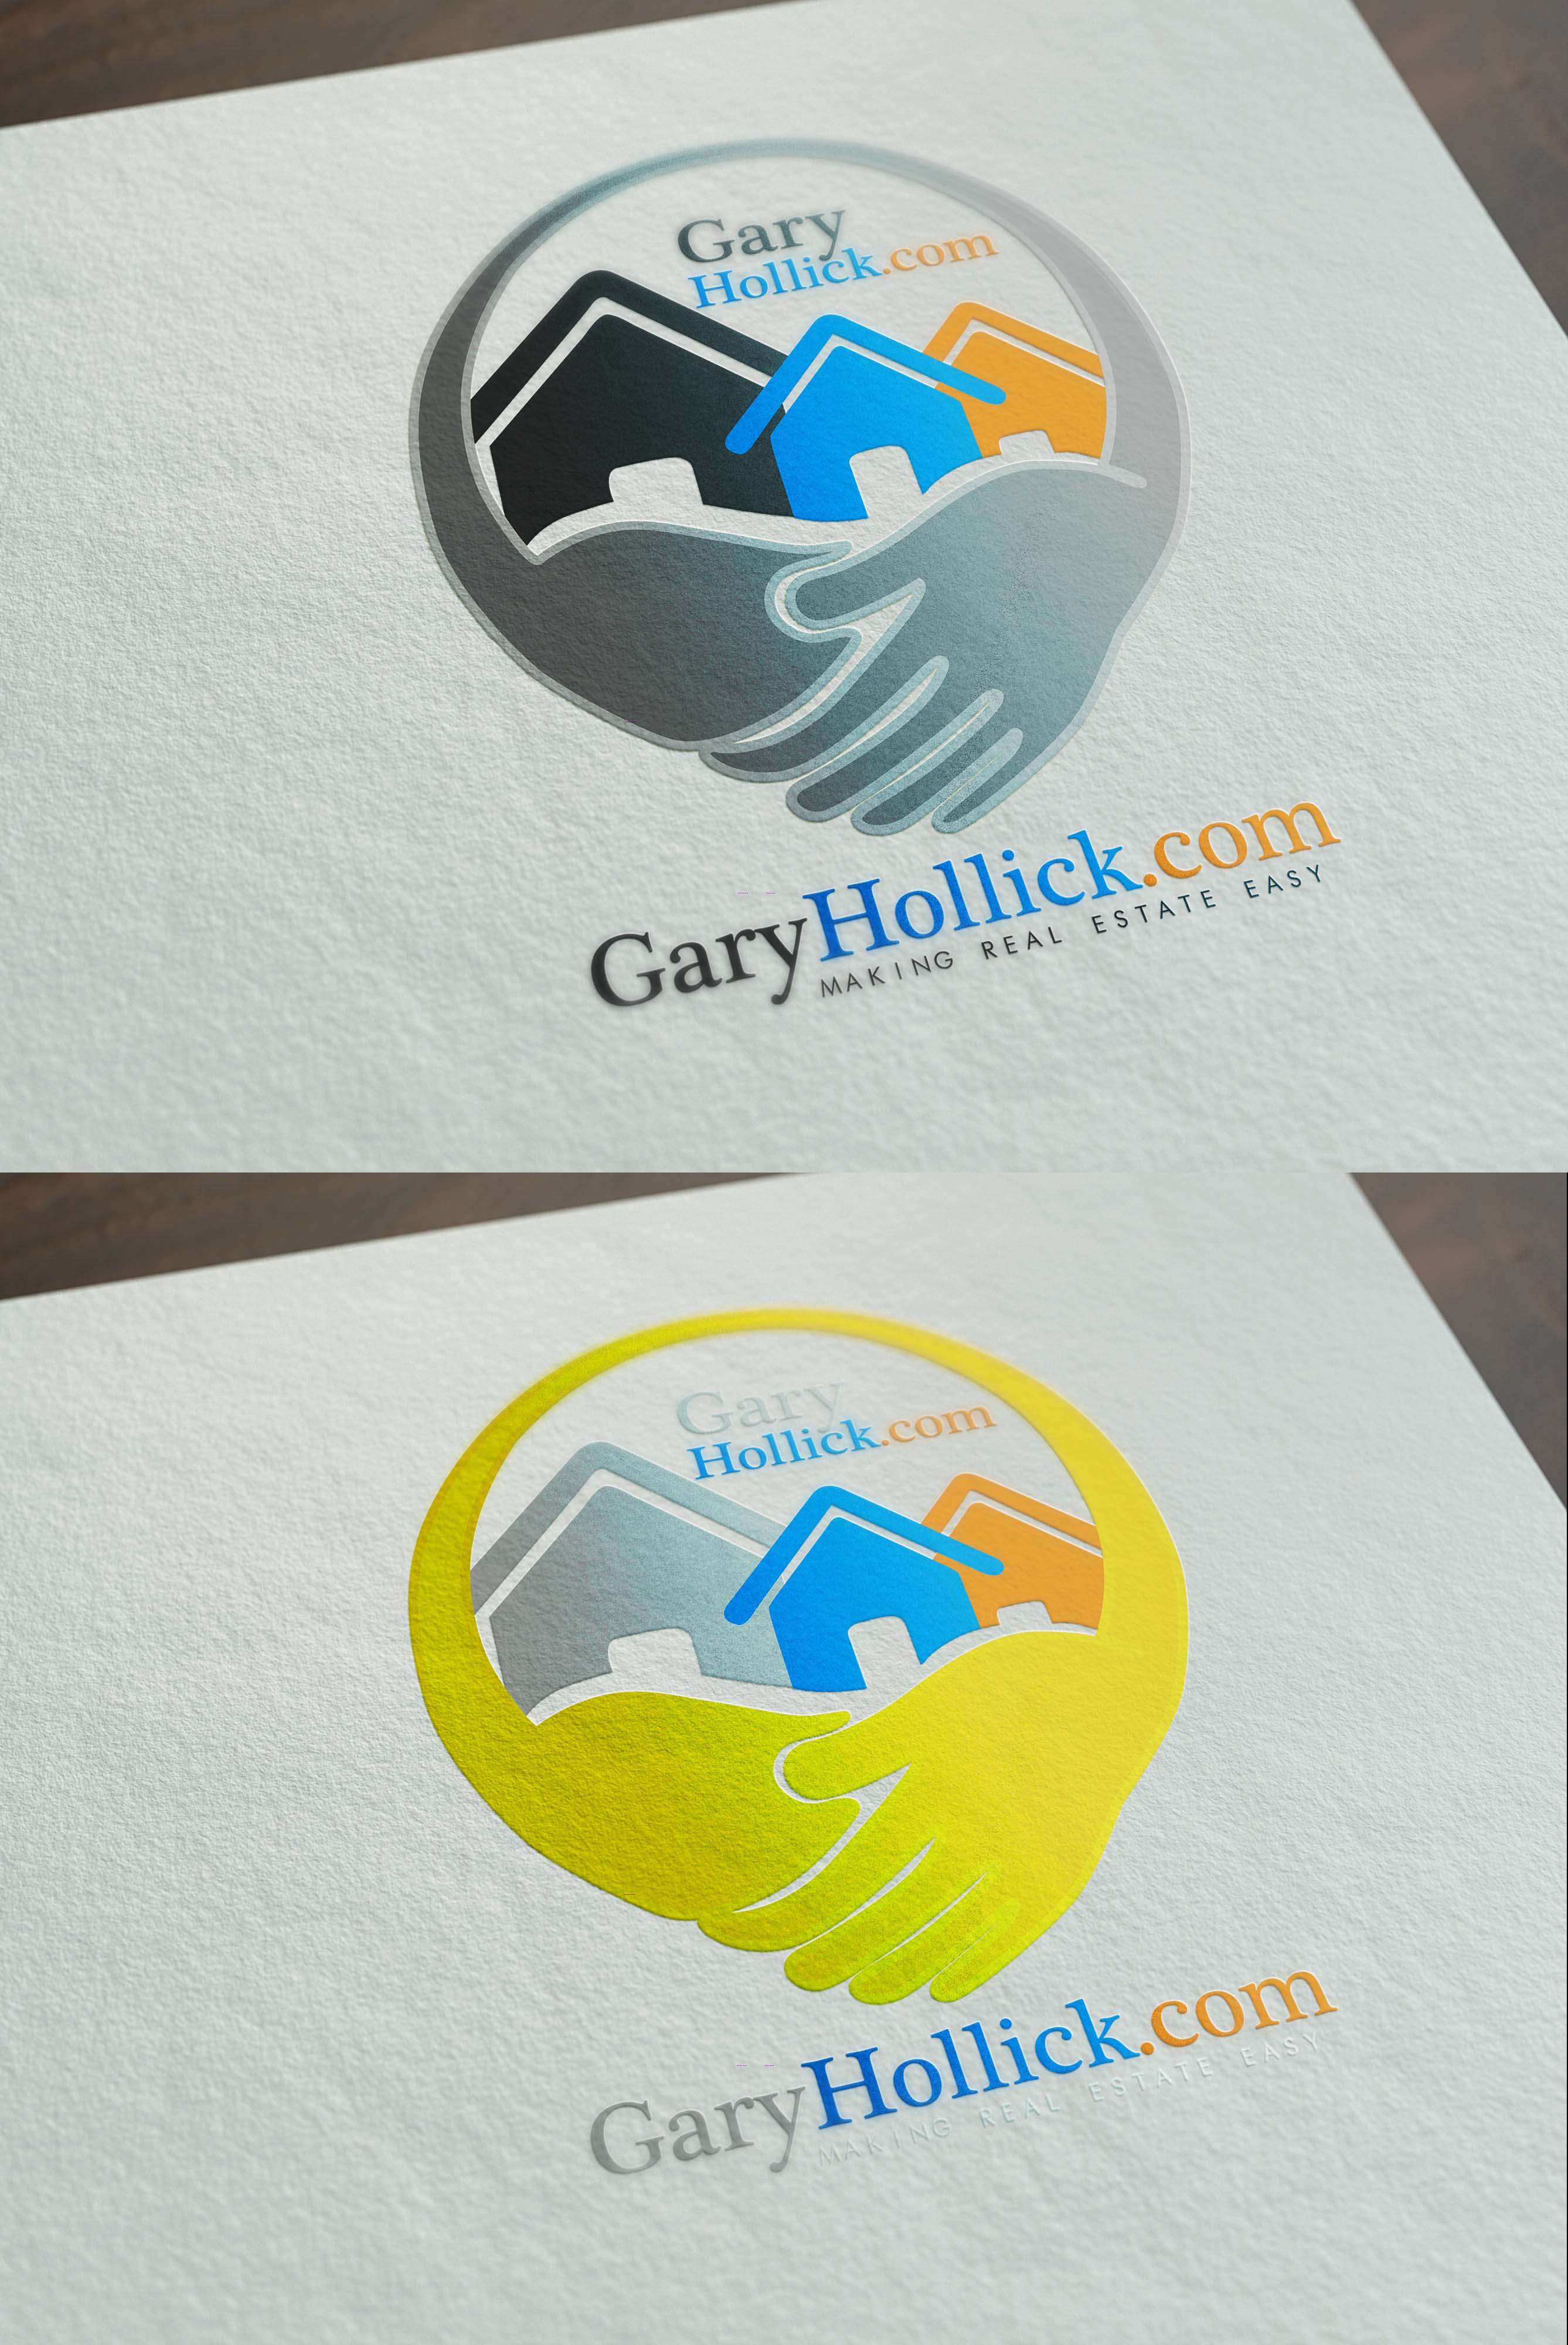 Logo Design by sgtmcoy - Entry No. 52 in the Logo Design Contest New Logo Design for GaryHollick.com.